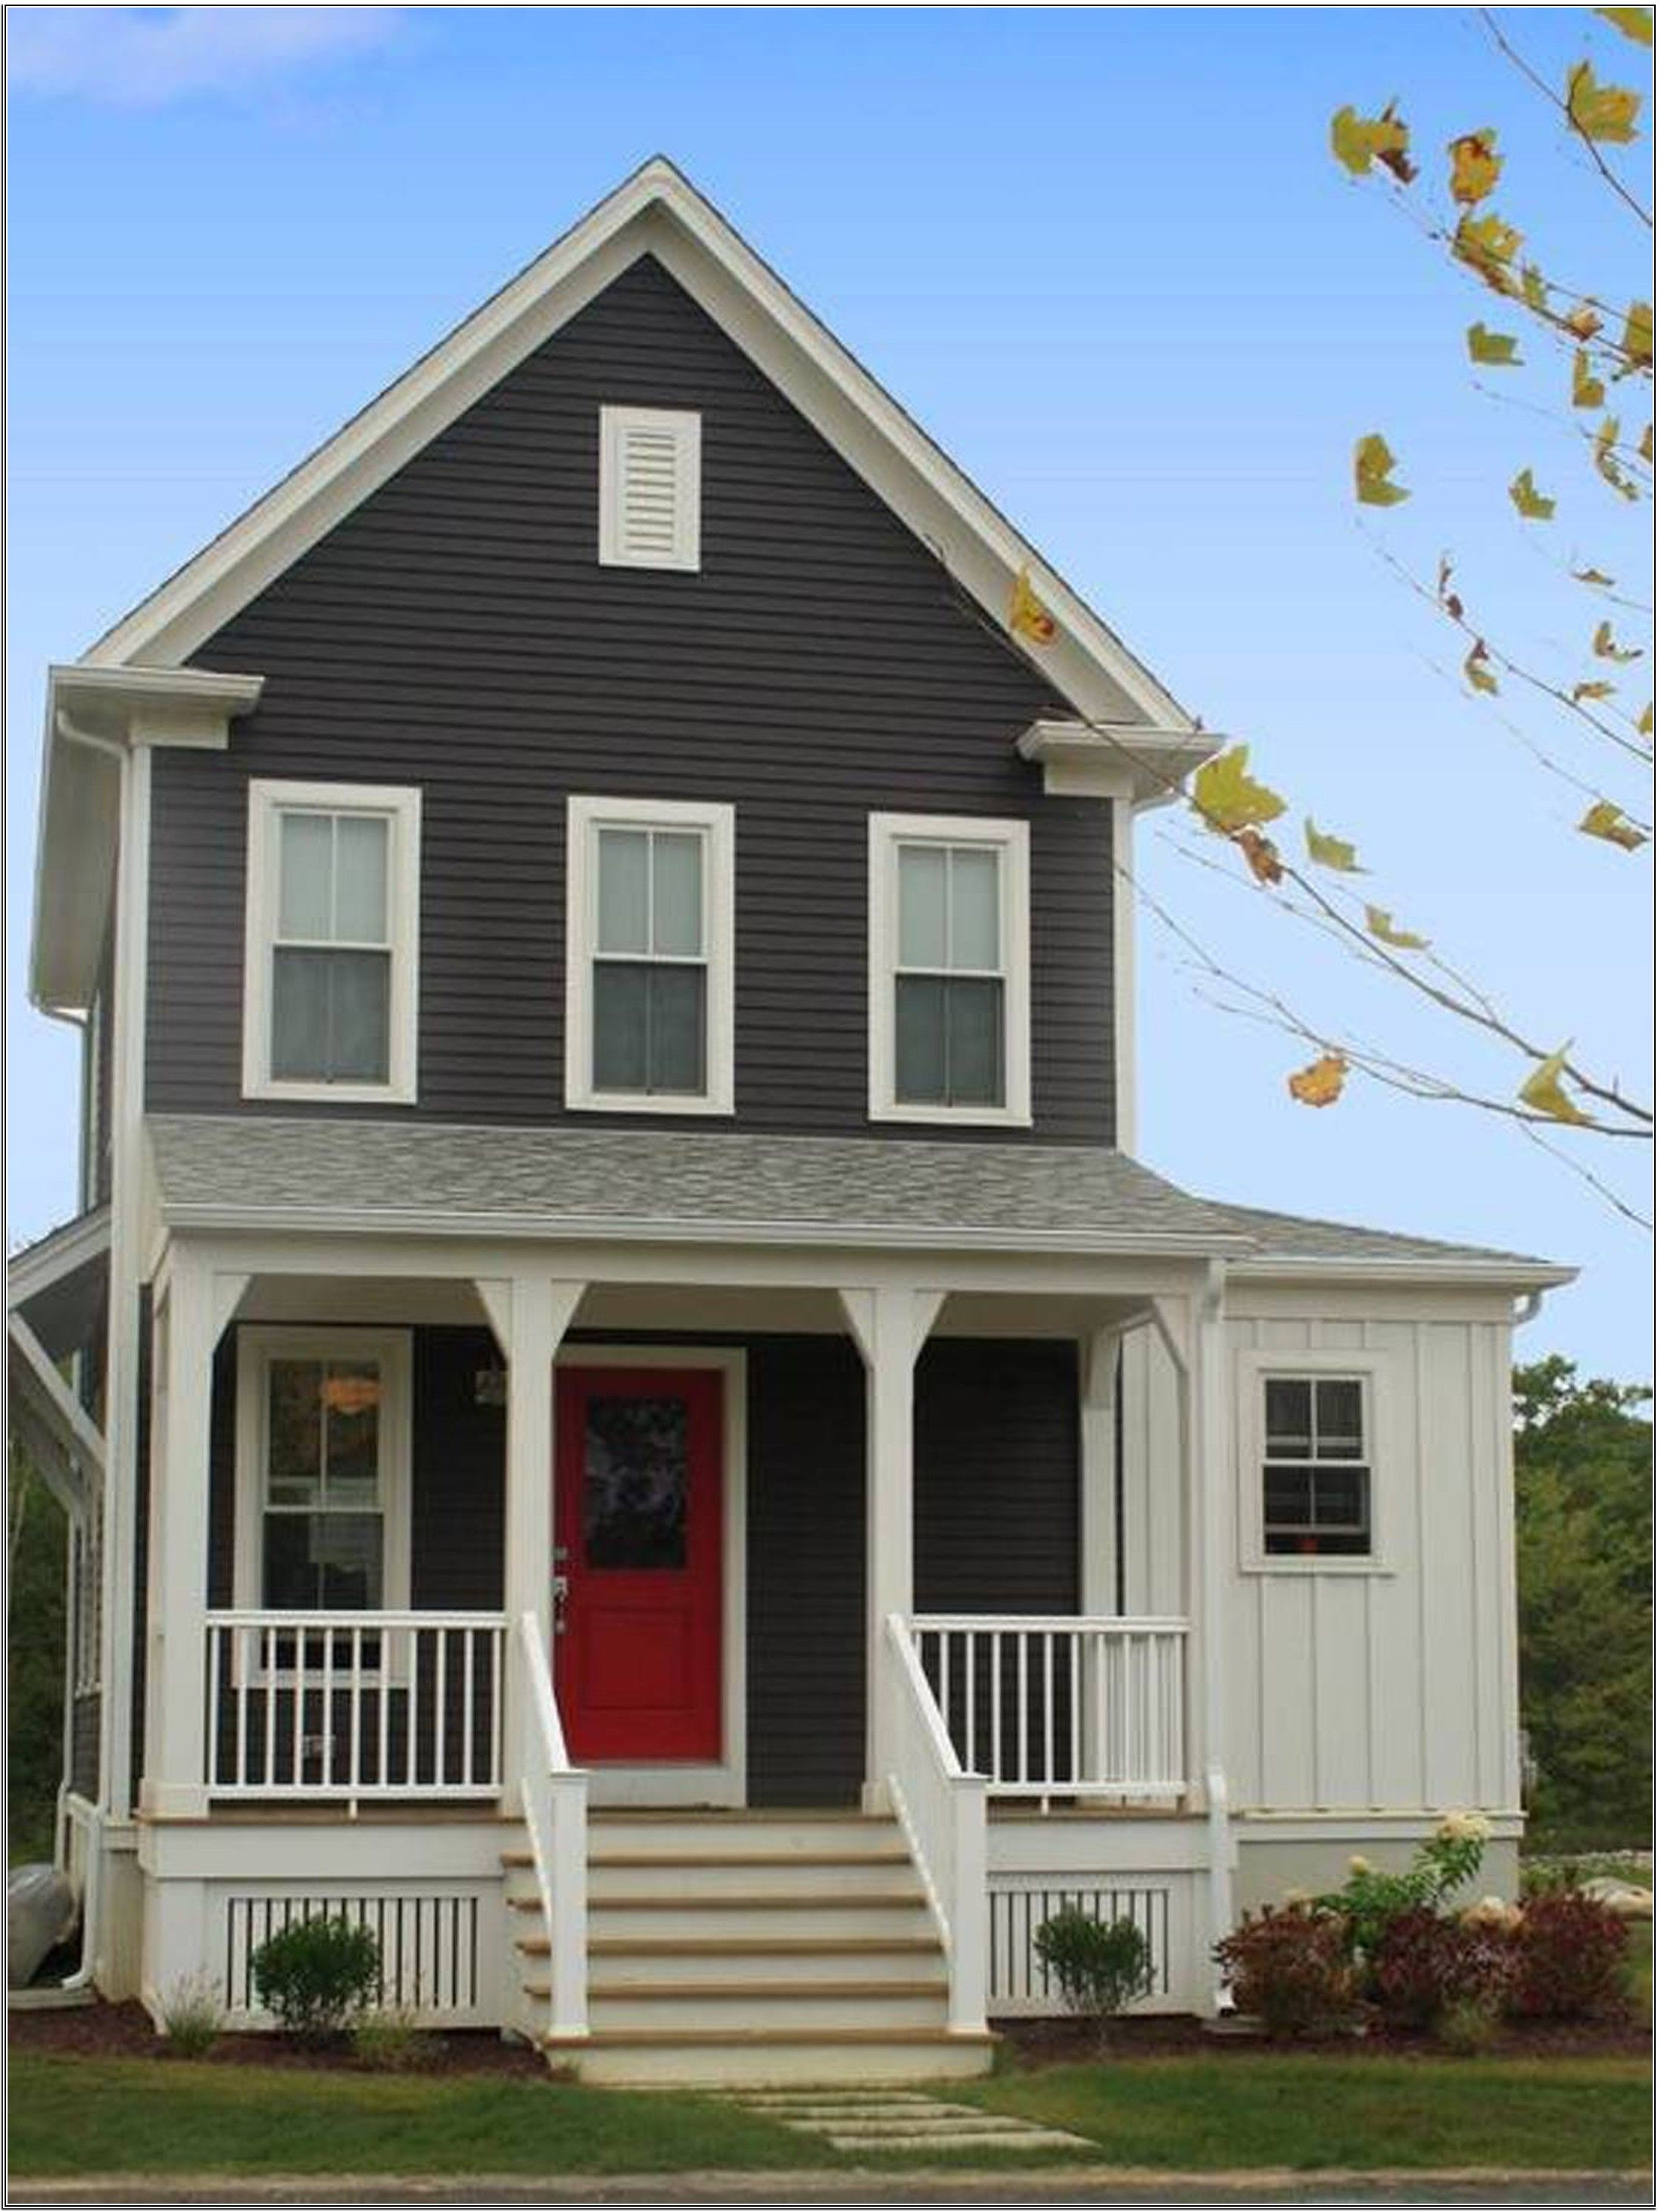 Superieur Delightful Gray House Exterior Paint Idea With White Window Frames Red Door  And White Balustrade Beautiful House Exterior Paint Ideas